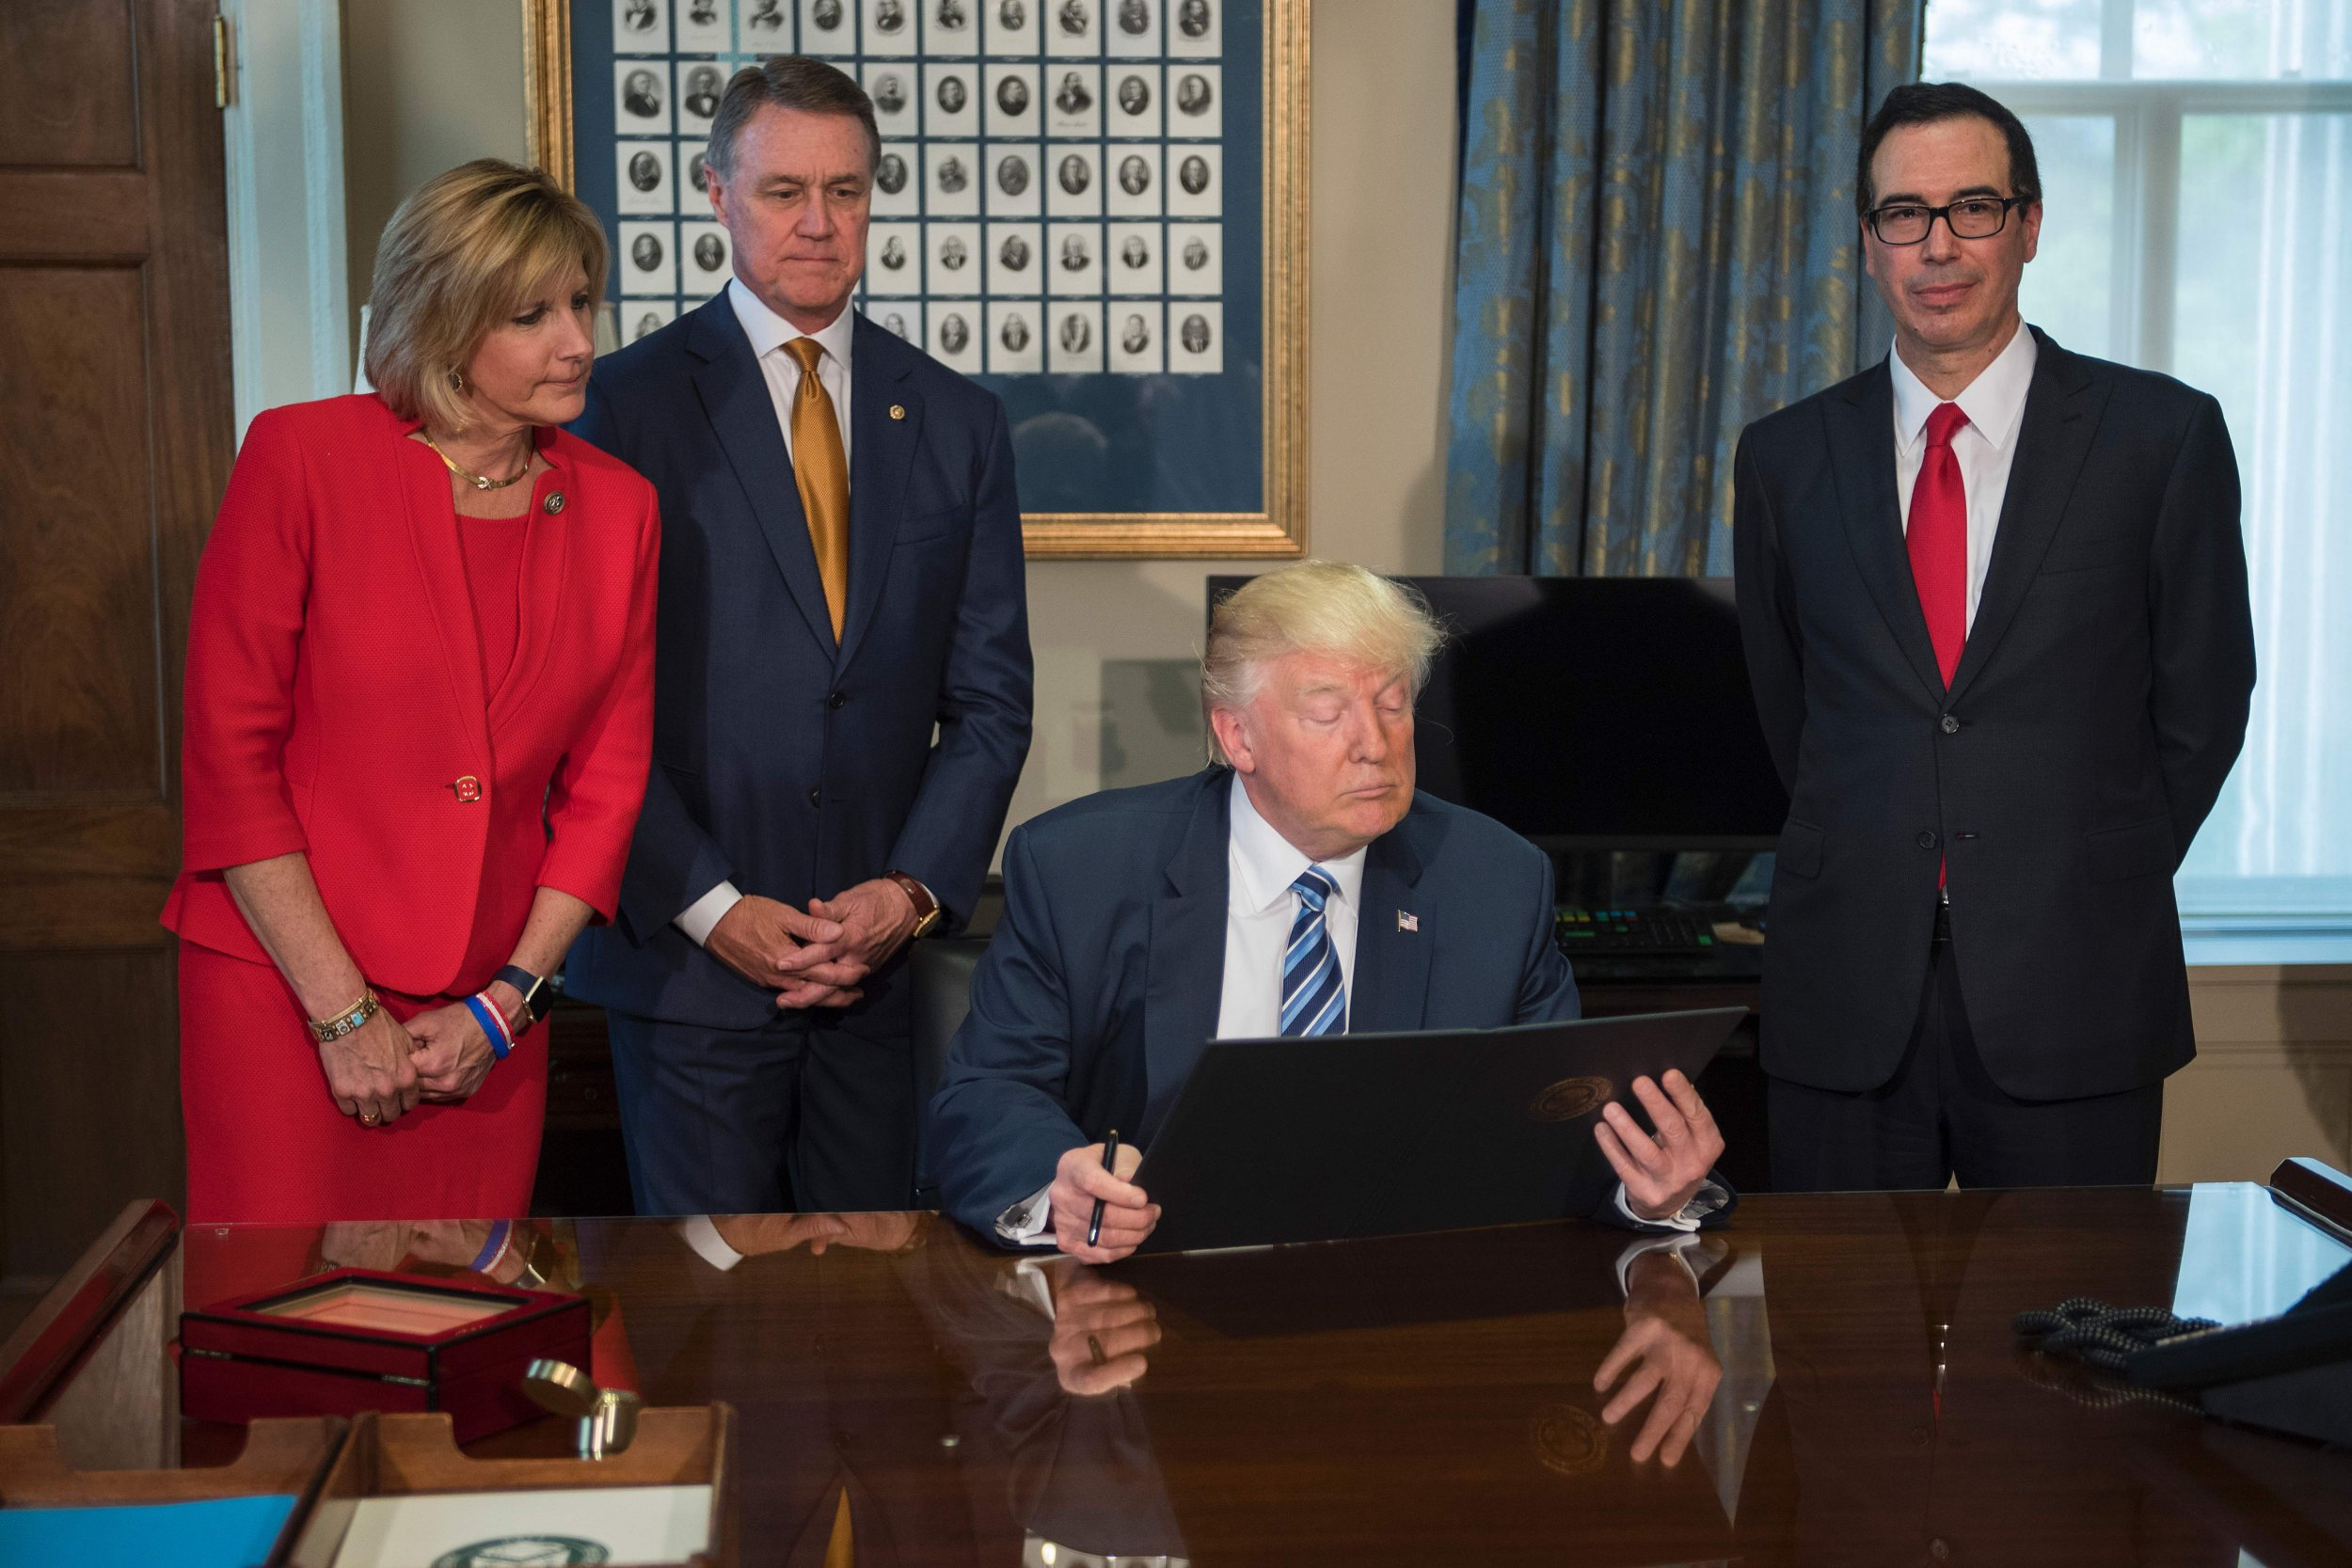 Claudia Tenney with Donald Trump